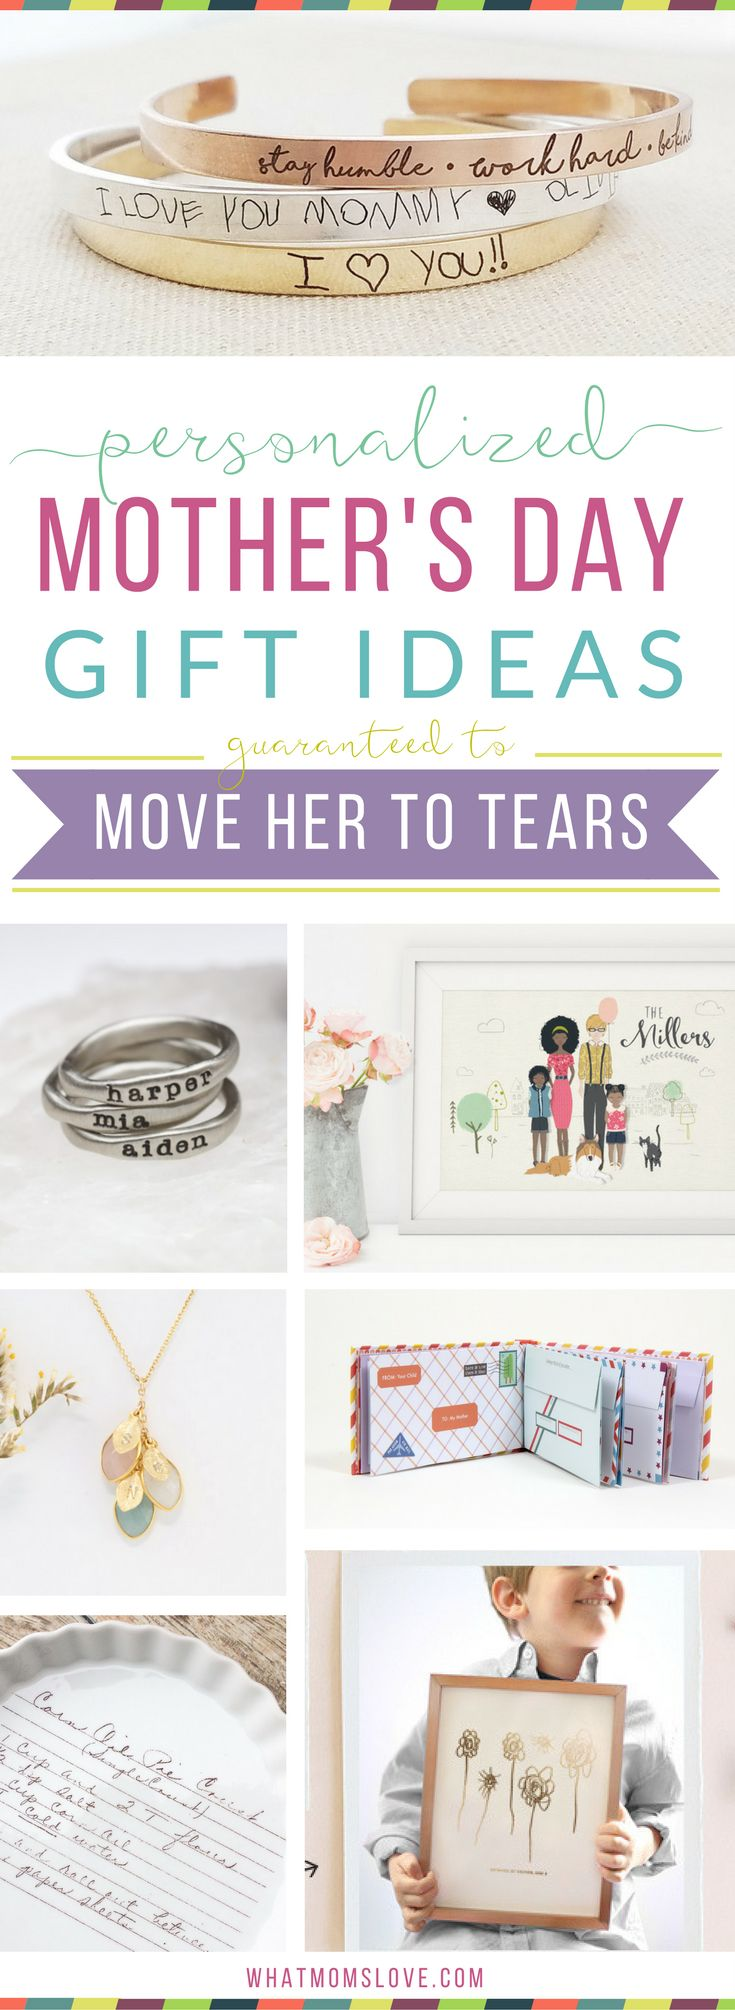 Unique personalized gift ideas for Mother's Day | Meaningful custom gifts for mom, nana or grandma from you, your kids (toddlers to teens) or grandkids. Buy her something she'll fall in love with this year! Thoughtful jewelry, keepsakes, kitchen, home and decor ideas - also great for birthdays, Christmas and the Holidays. via @whatmomslove